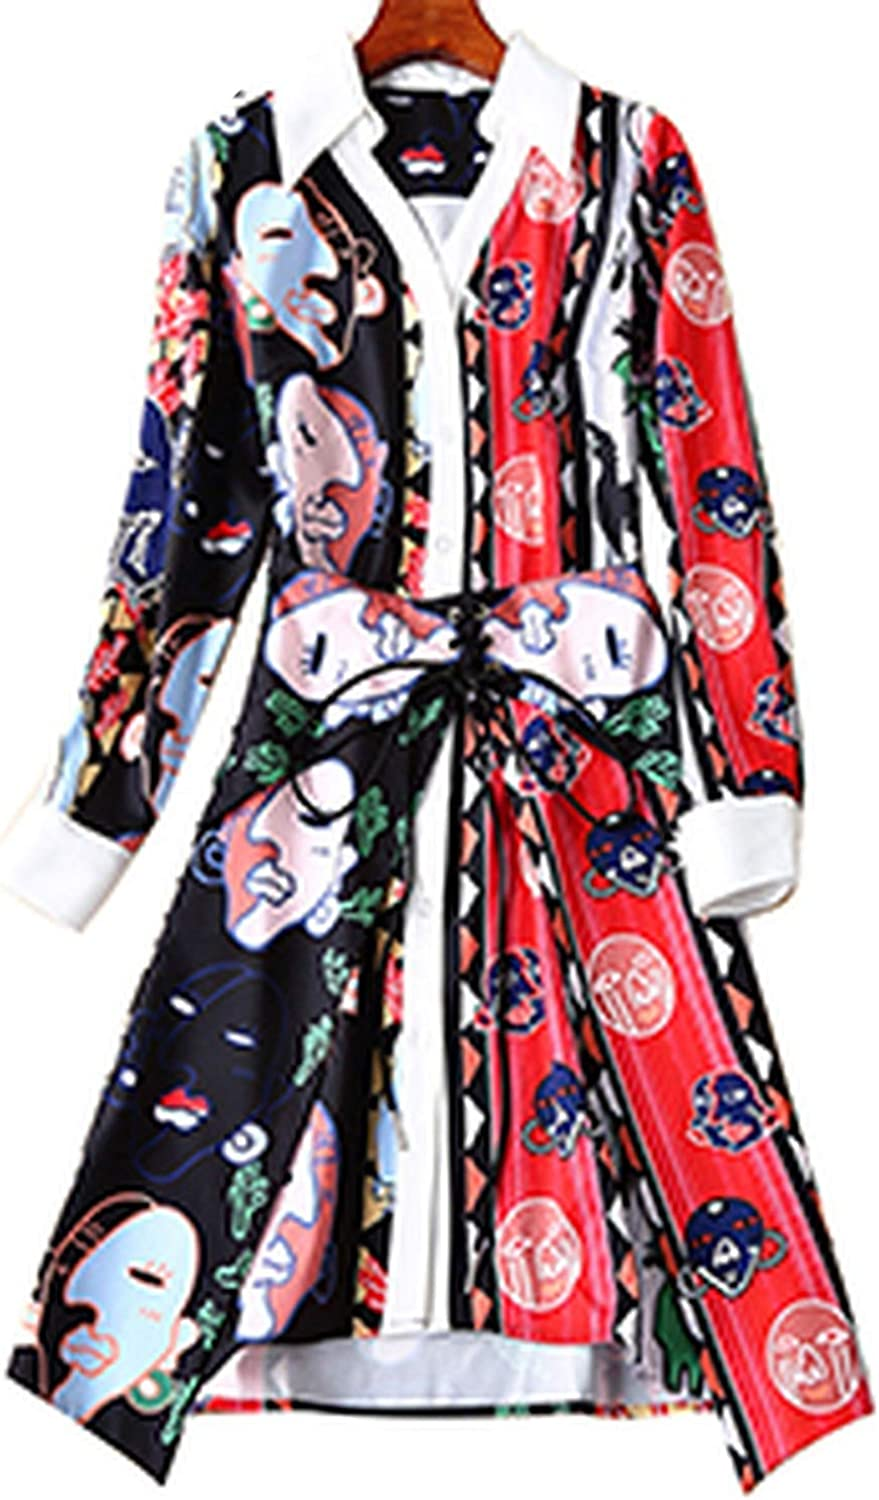 Fashion Print Dresses TurnDown Collar Sashes Elegant Party Dress Spring and Summer Runway New Women,Multi,M